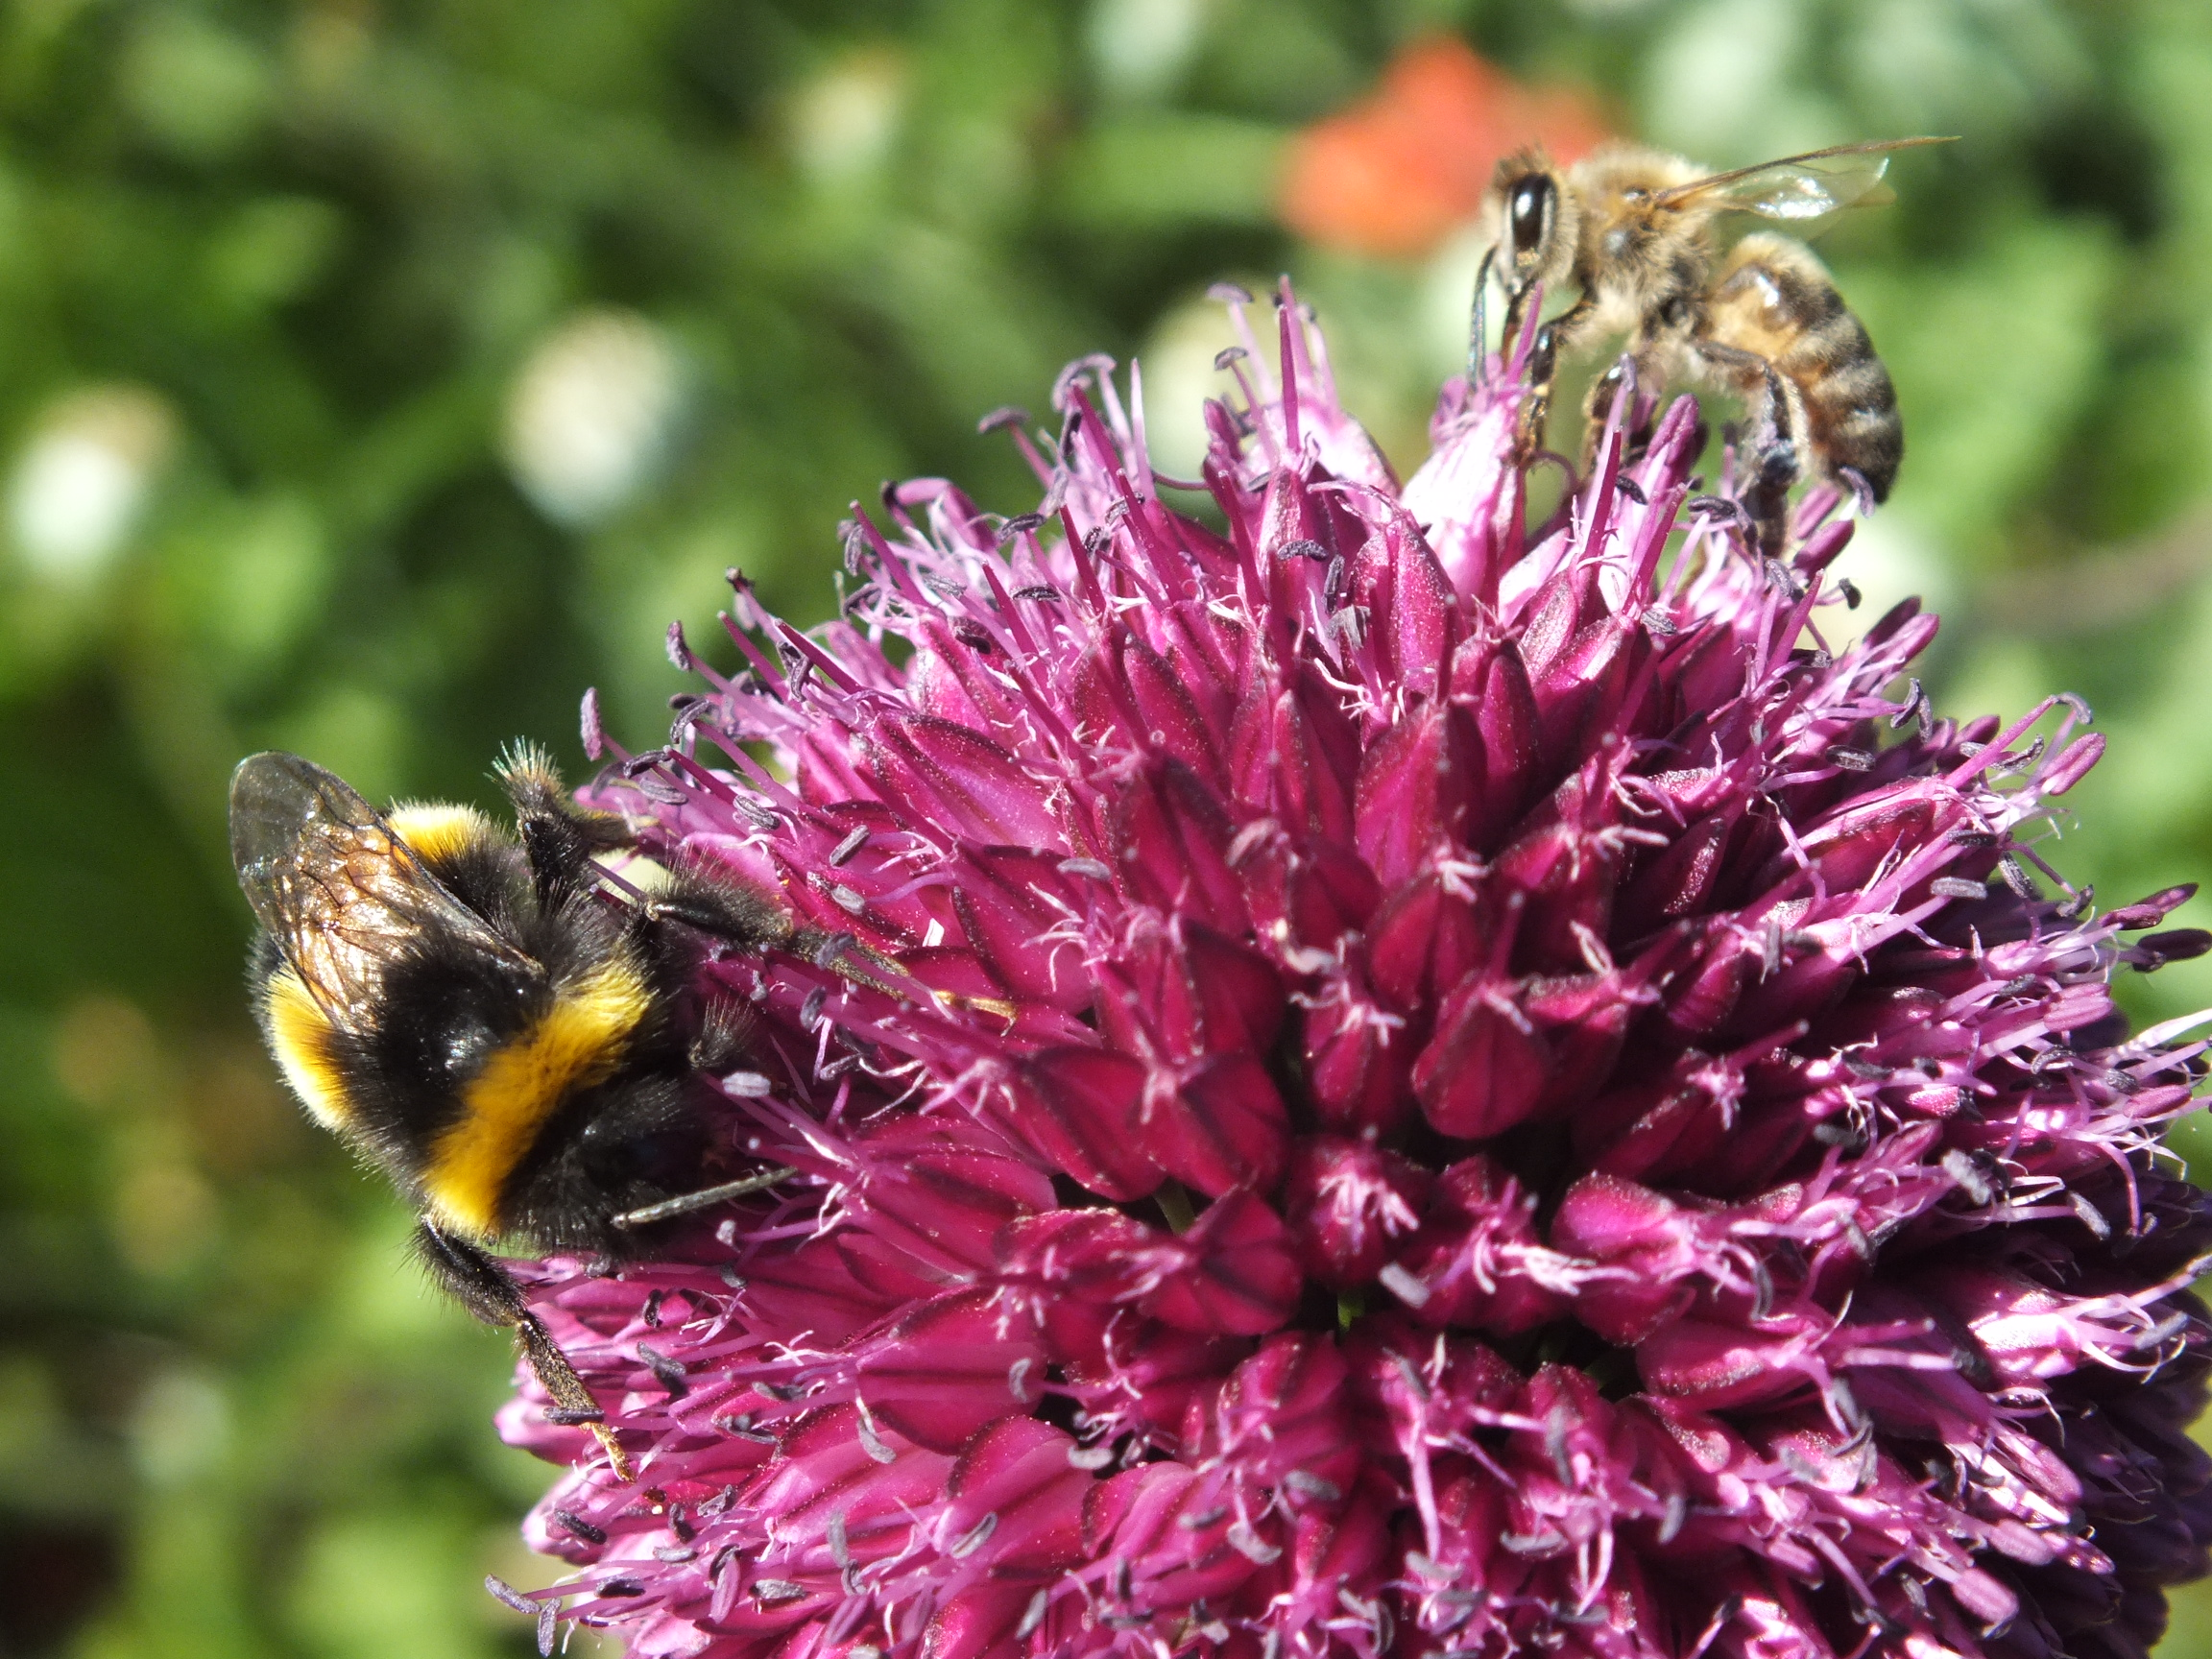 A Honey Bee and a Bumble Bee share a purple flower